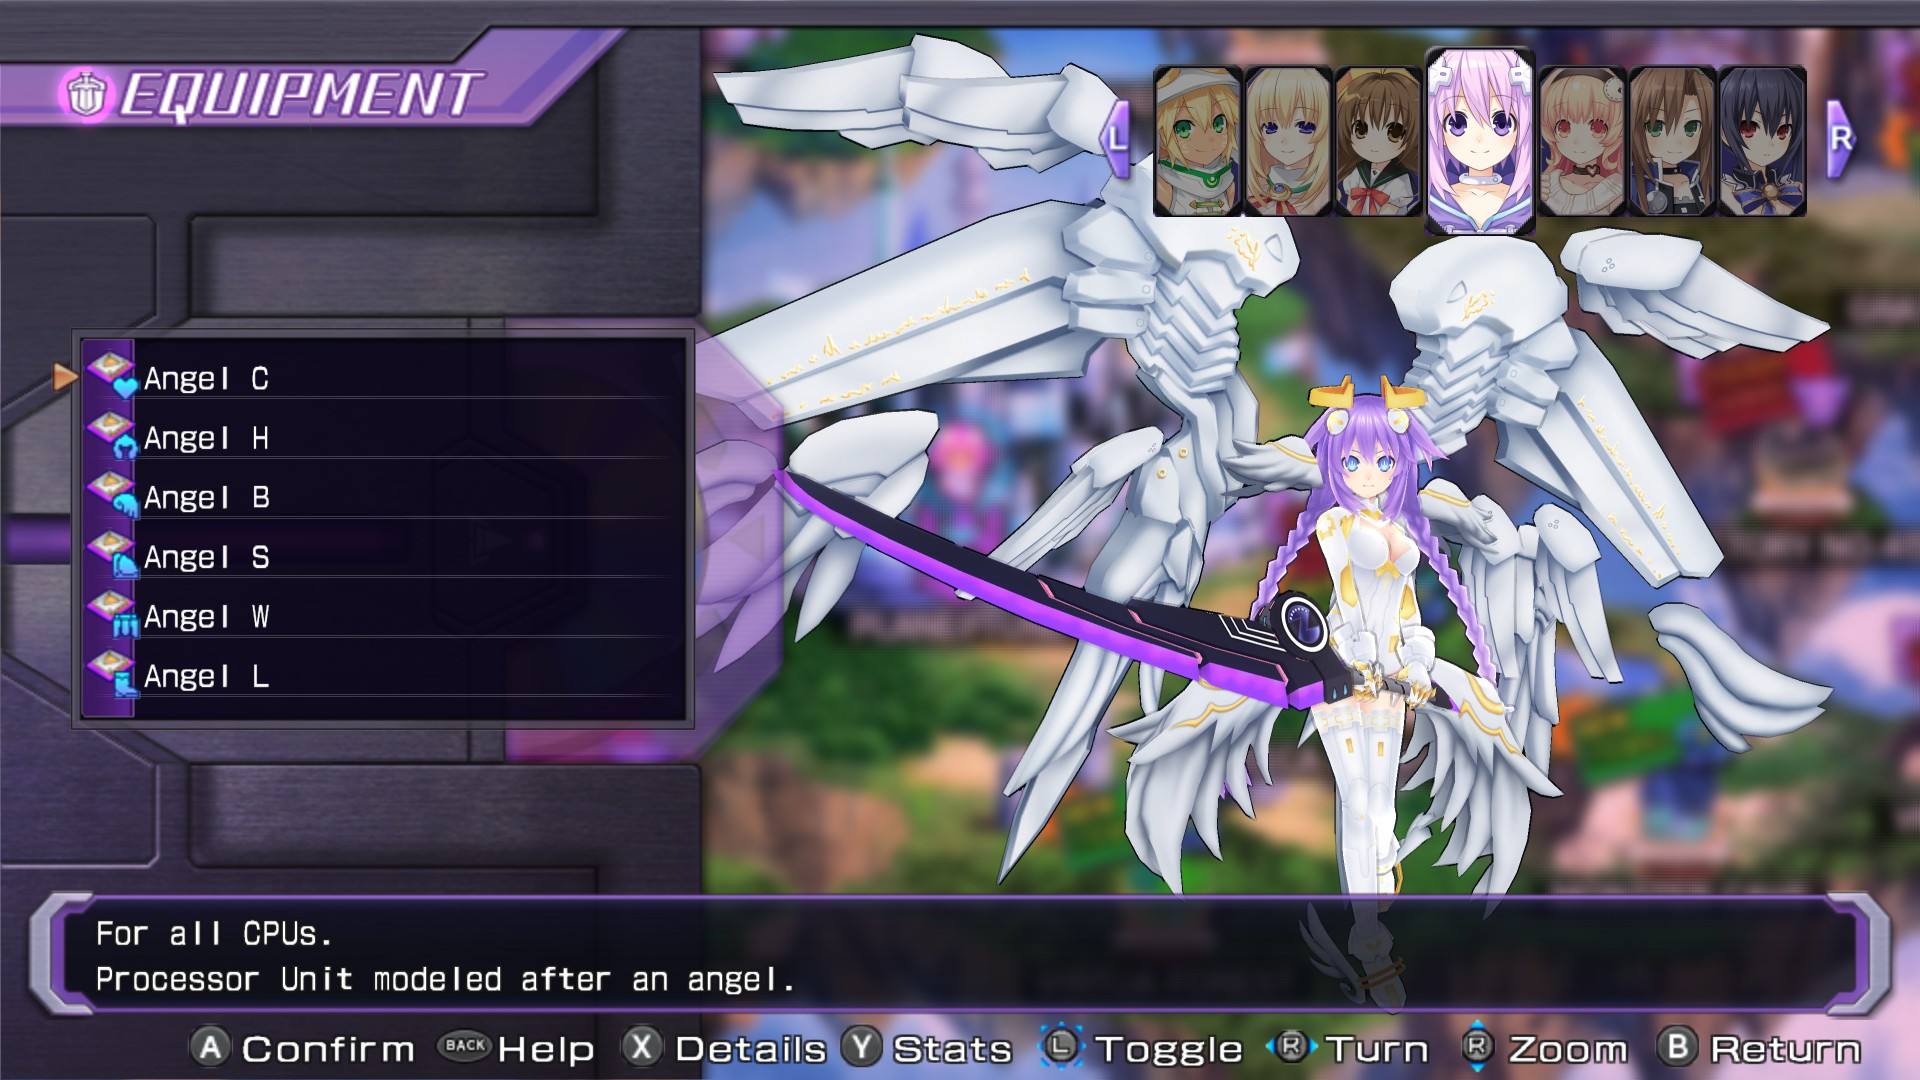 Angel Processor Unit (Neptune).jpg